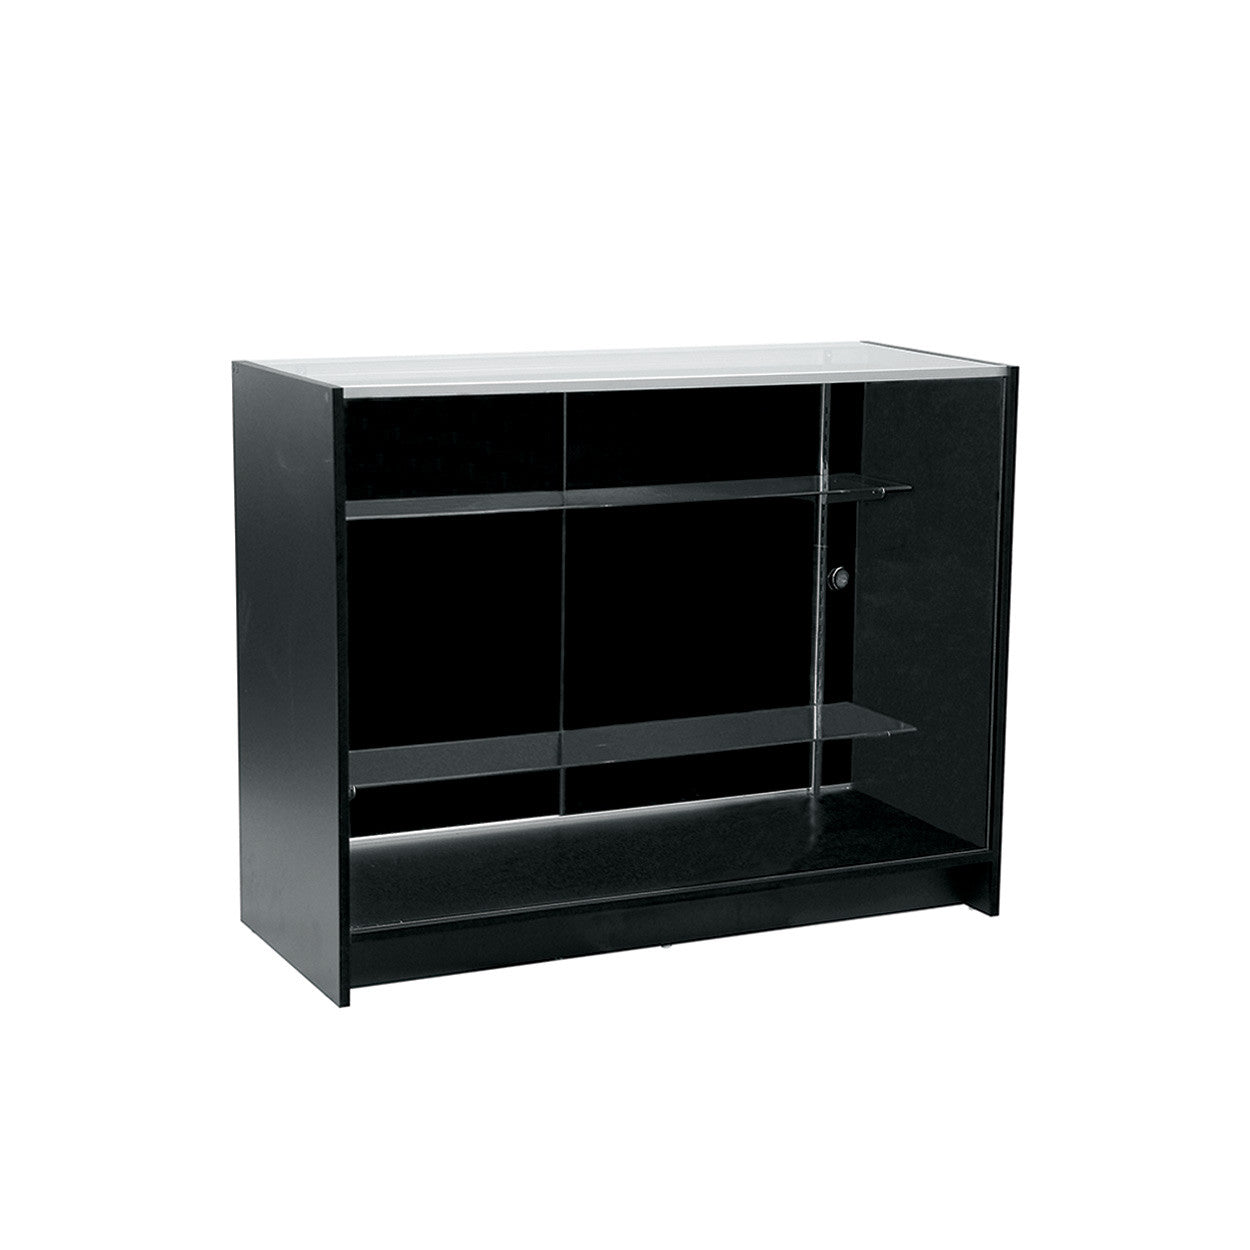 Glass Showcase With 2 Shelves 1200 X 500 X 940Mm High